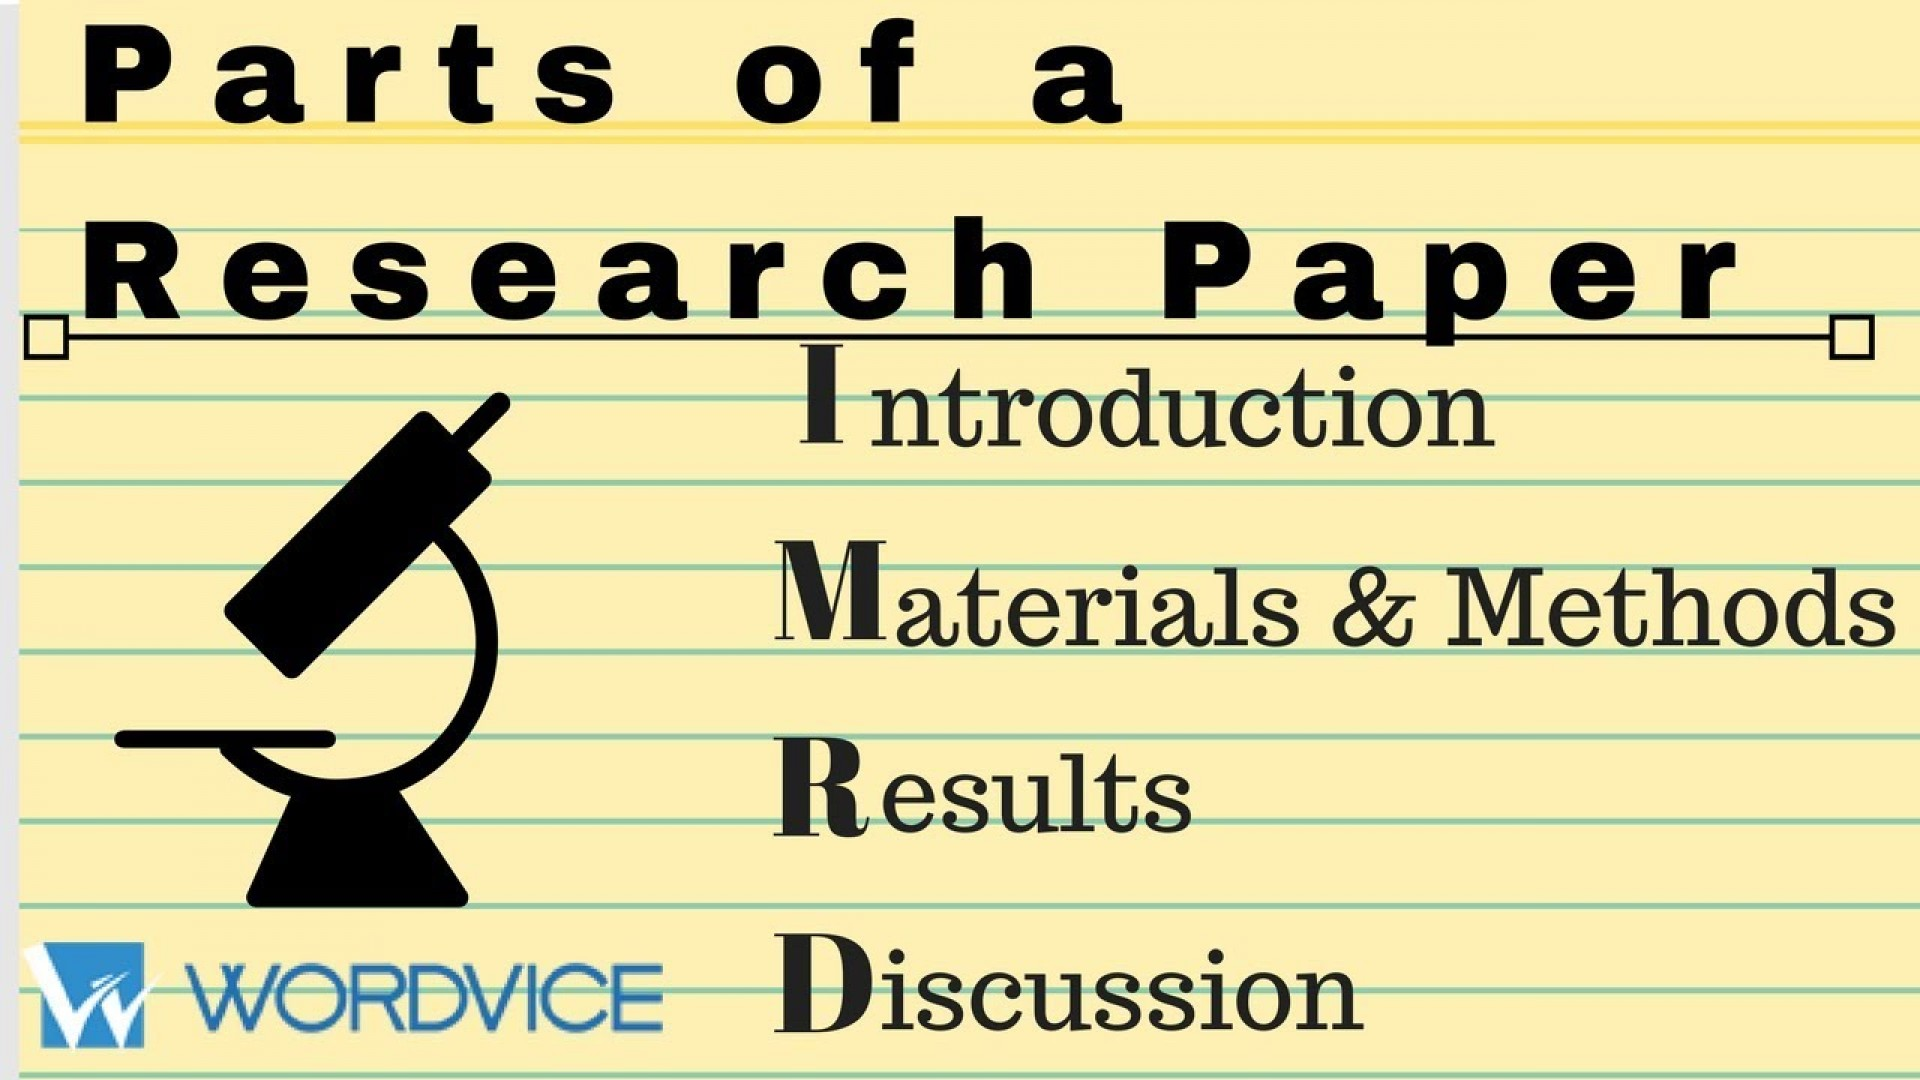 003 Parts Of Research Paper Remarkable Chapter 3 4 Introduction In 1920